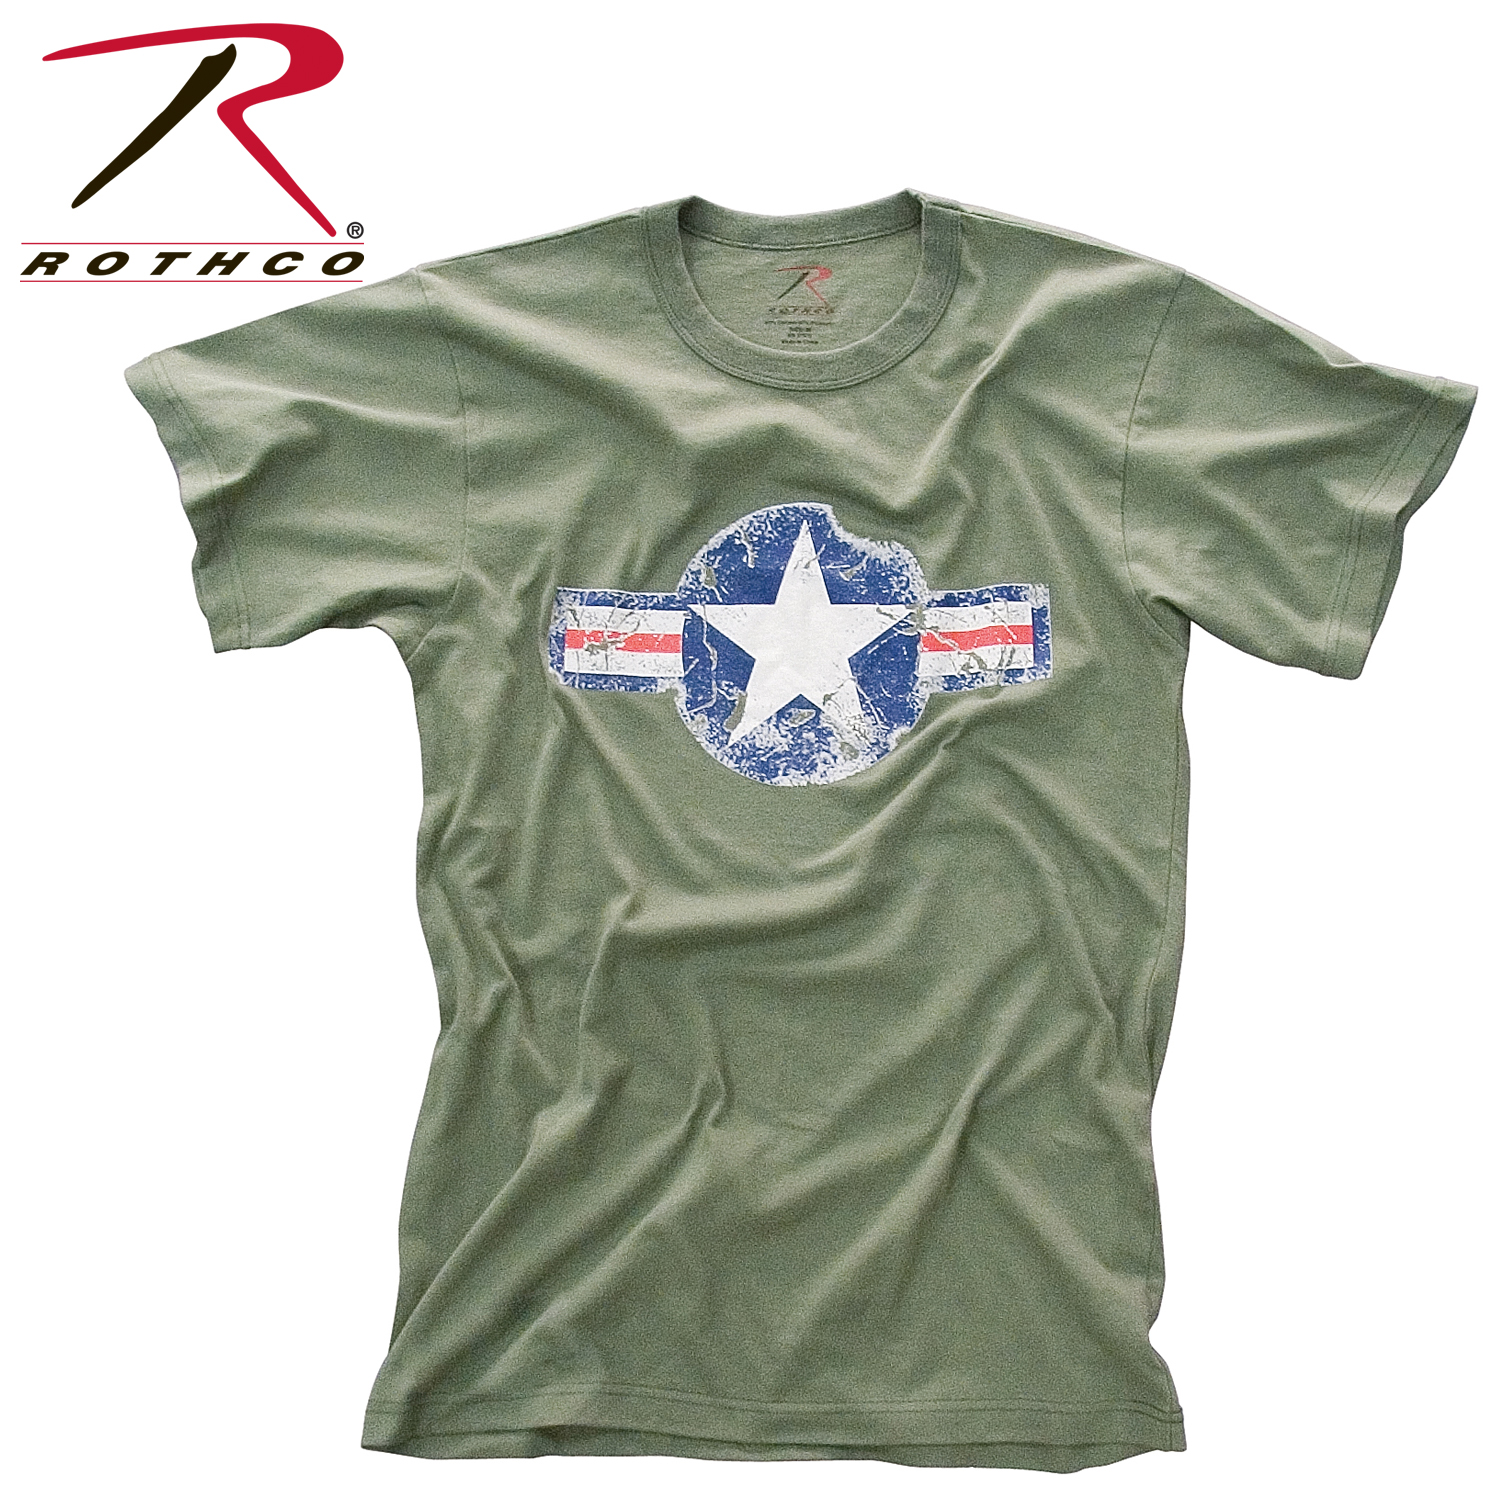 rothco vintage army air corps t shirt. Black Bedroom Furniture Sets. Home Design Ideas